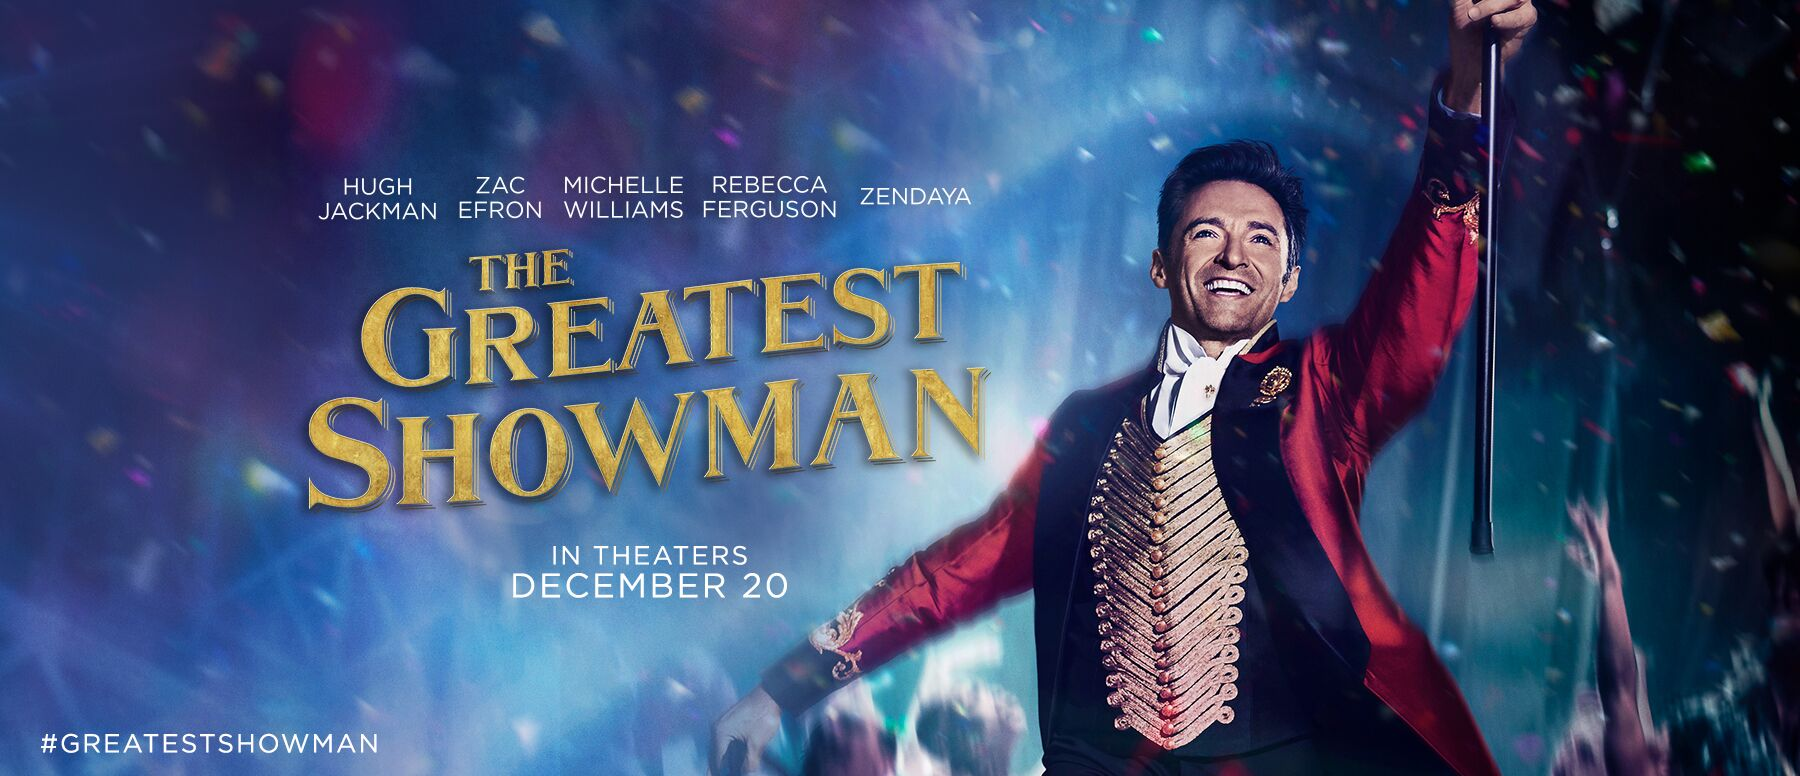 The Greatest Showman Hot Movie Art Silk Poster Canvas